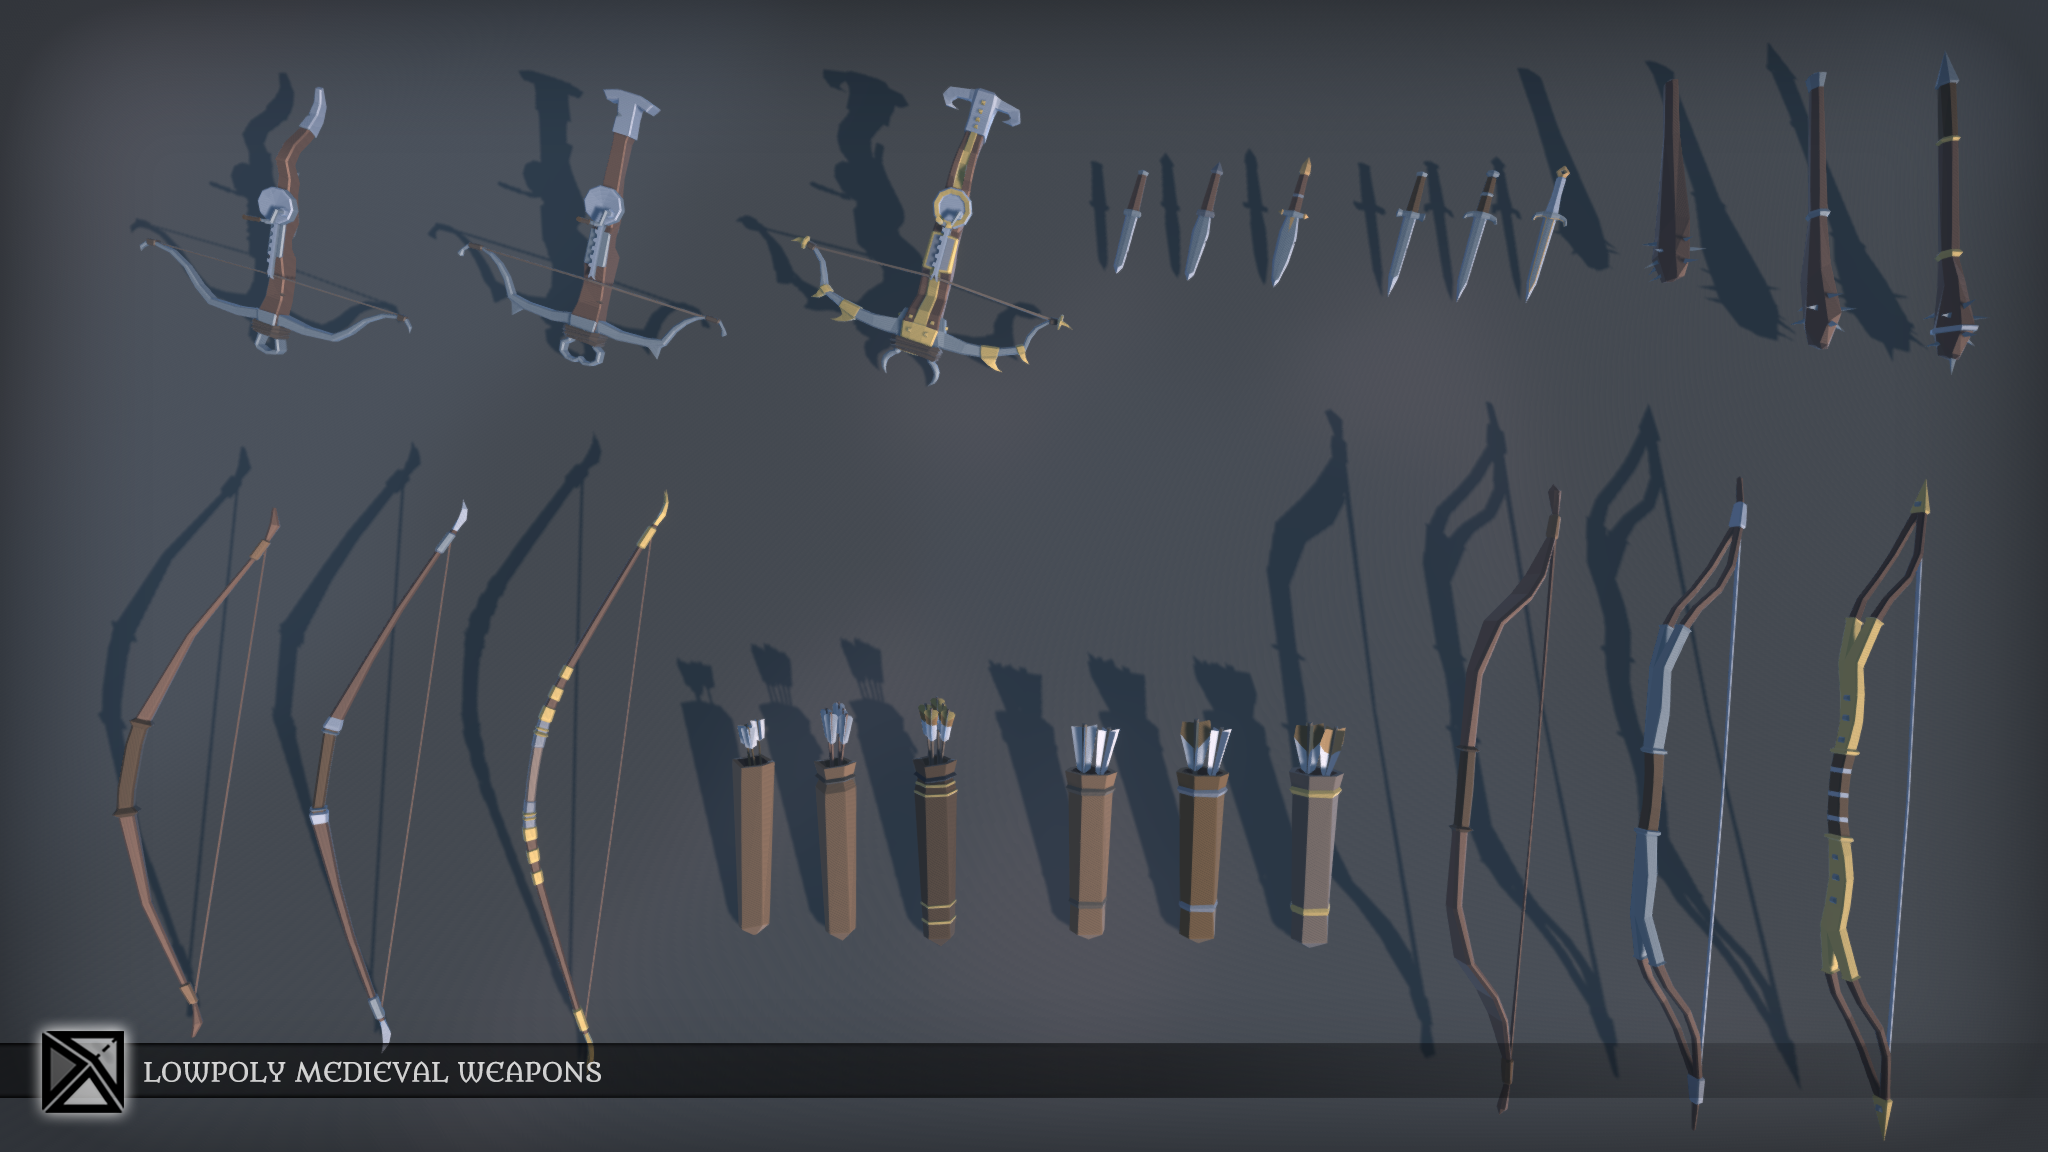 PT_Medieval_Lowpoly_Weapons_Crossbow_Longbow_Dagger_Club_Quiver.png